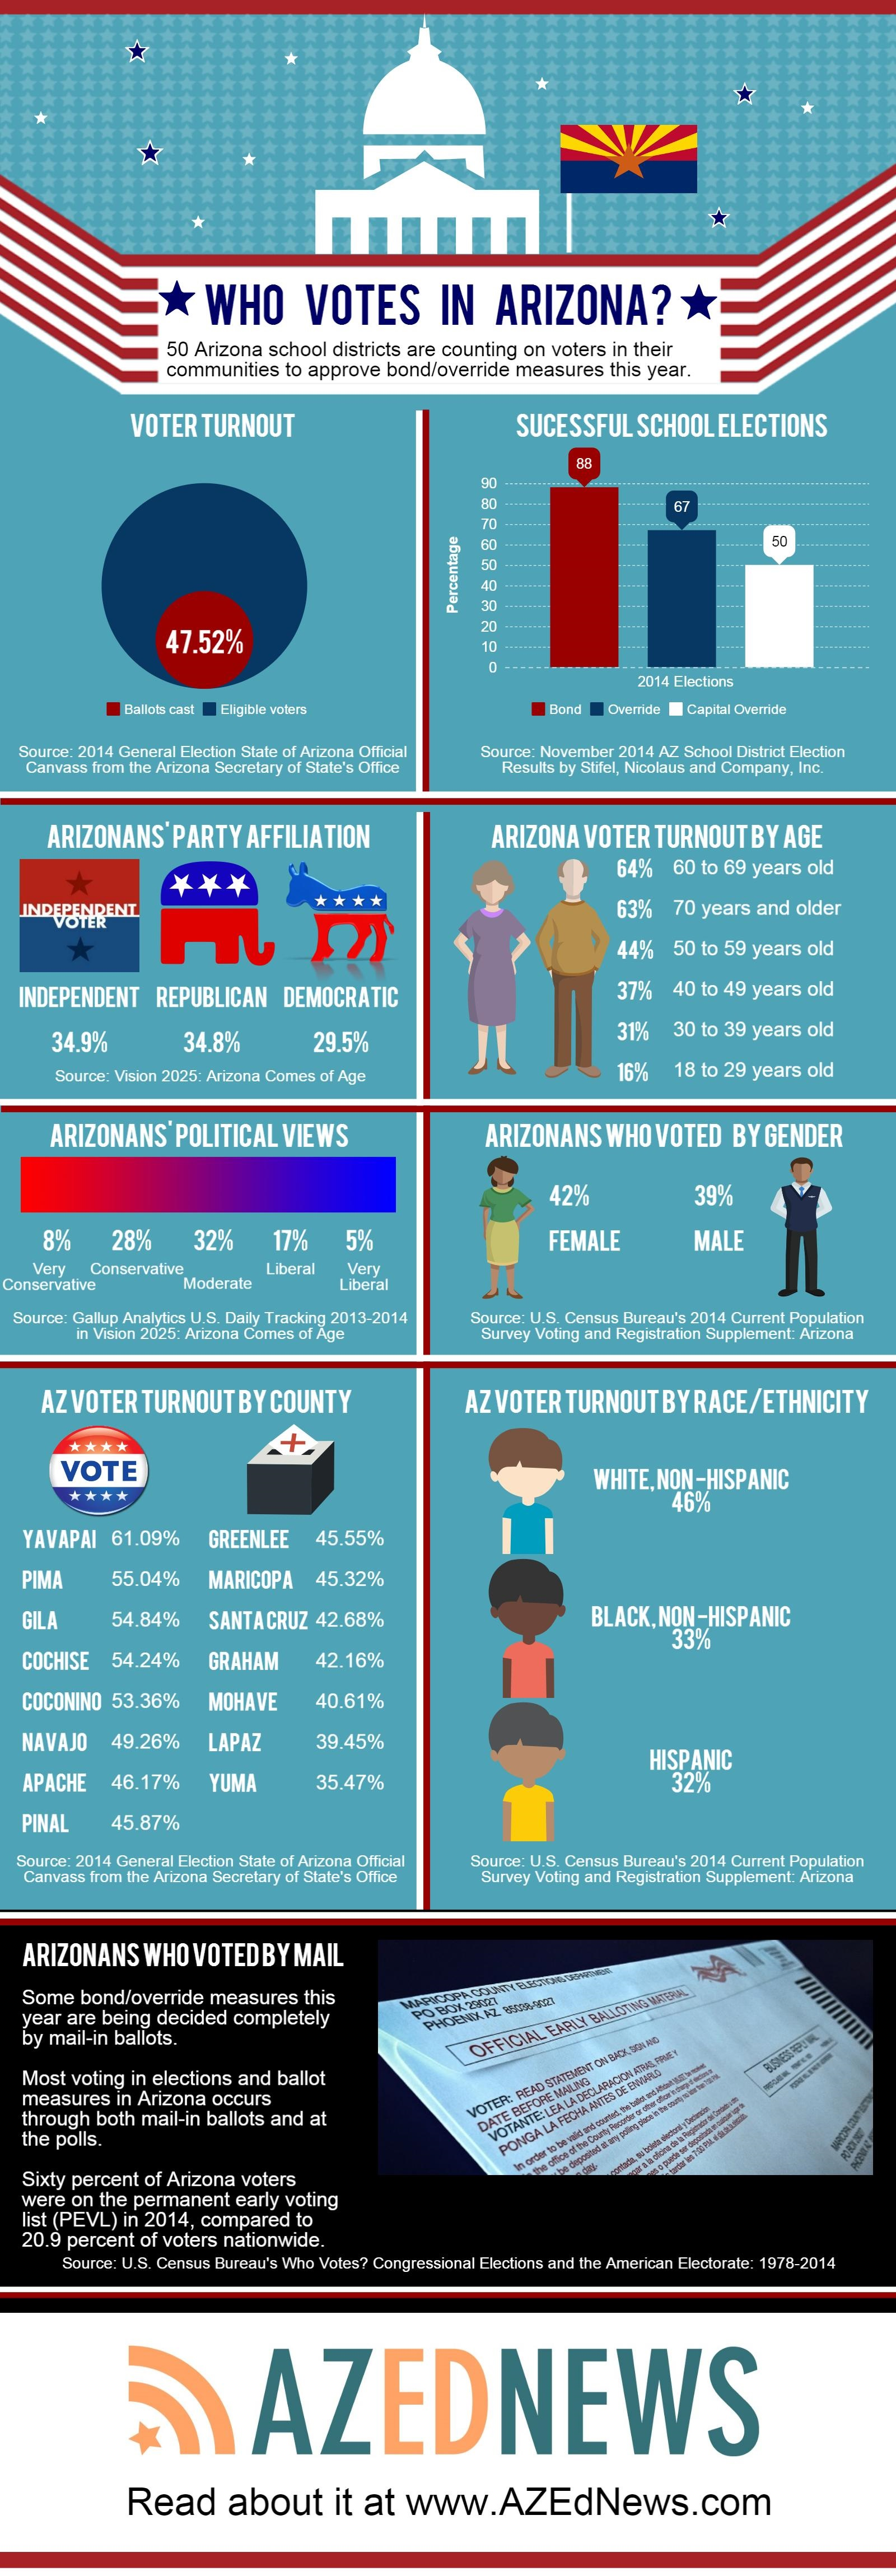 Arizona voters: Who we are, how we vote and how we compare nationally (+ Infographic) FinalEdited3WhoVotesInAZInfographic-3